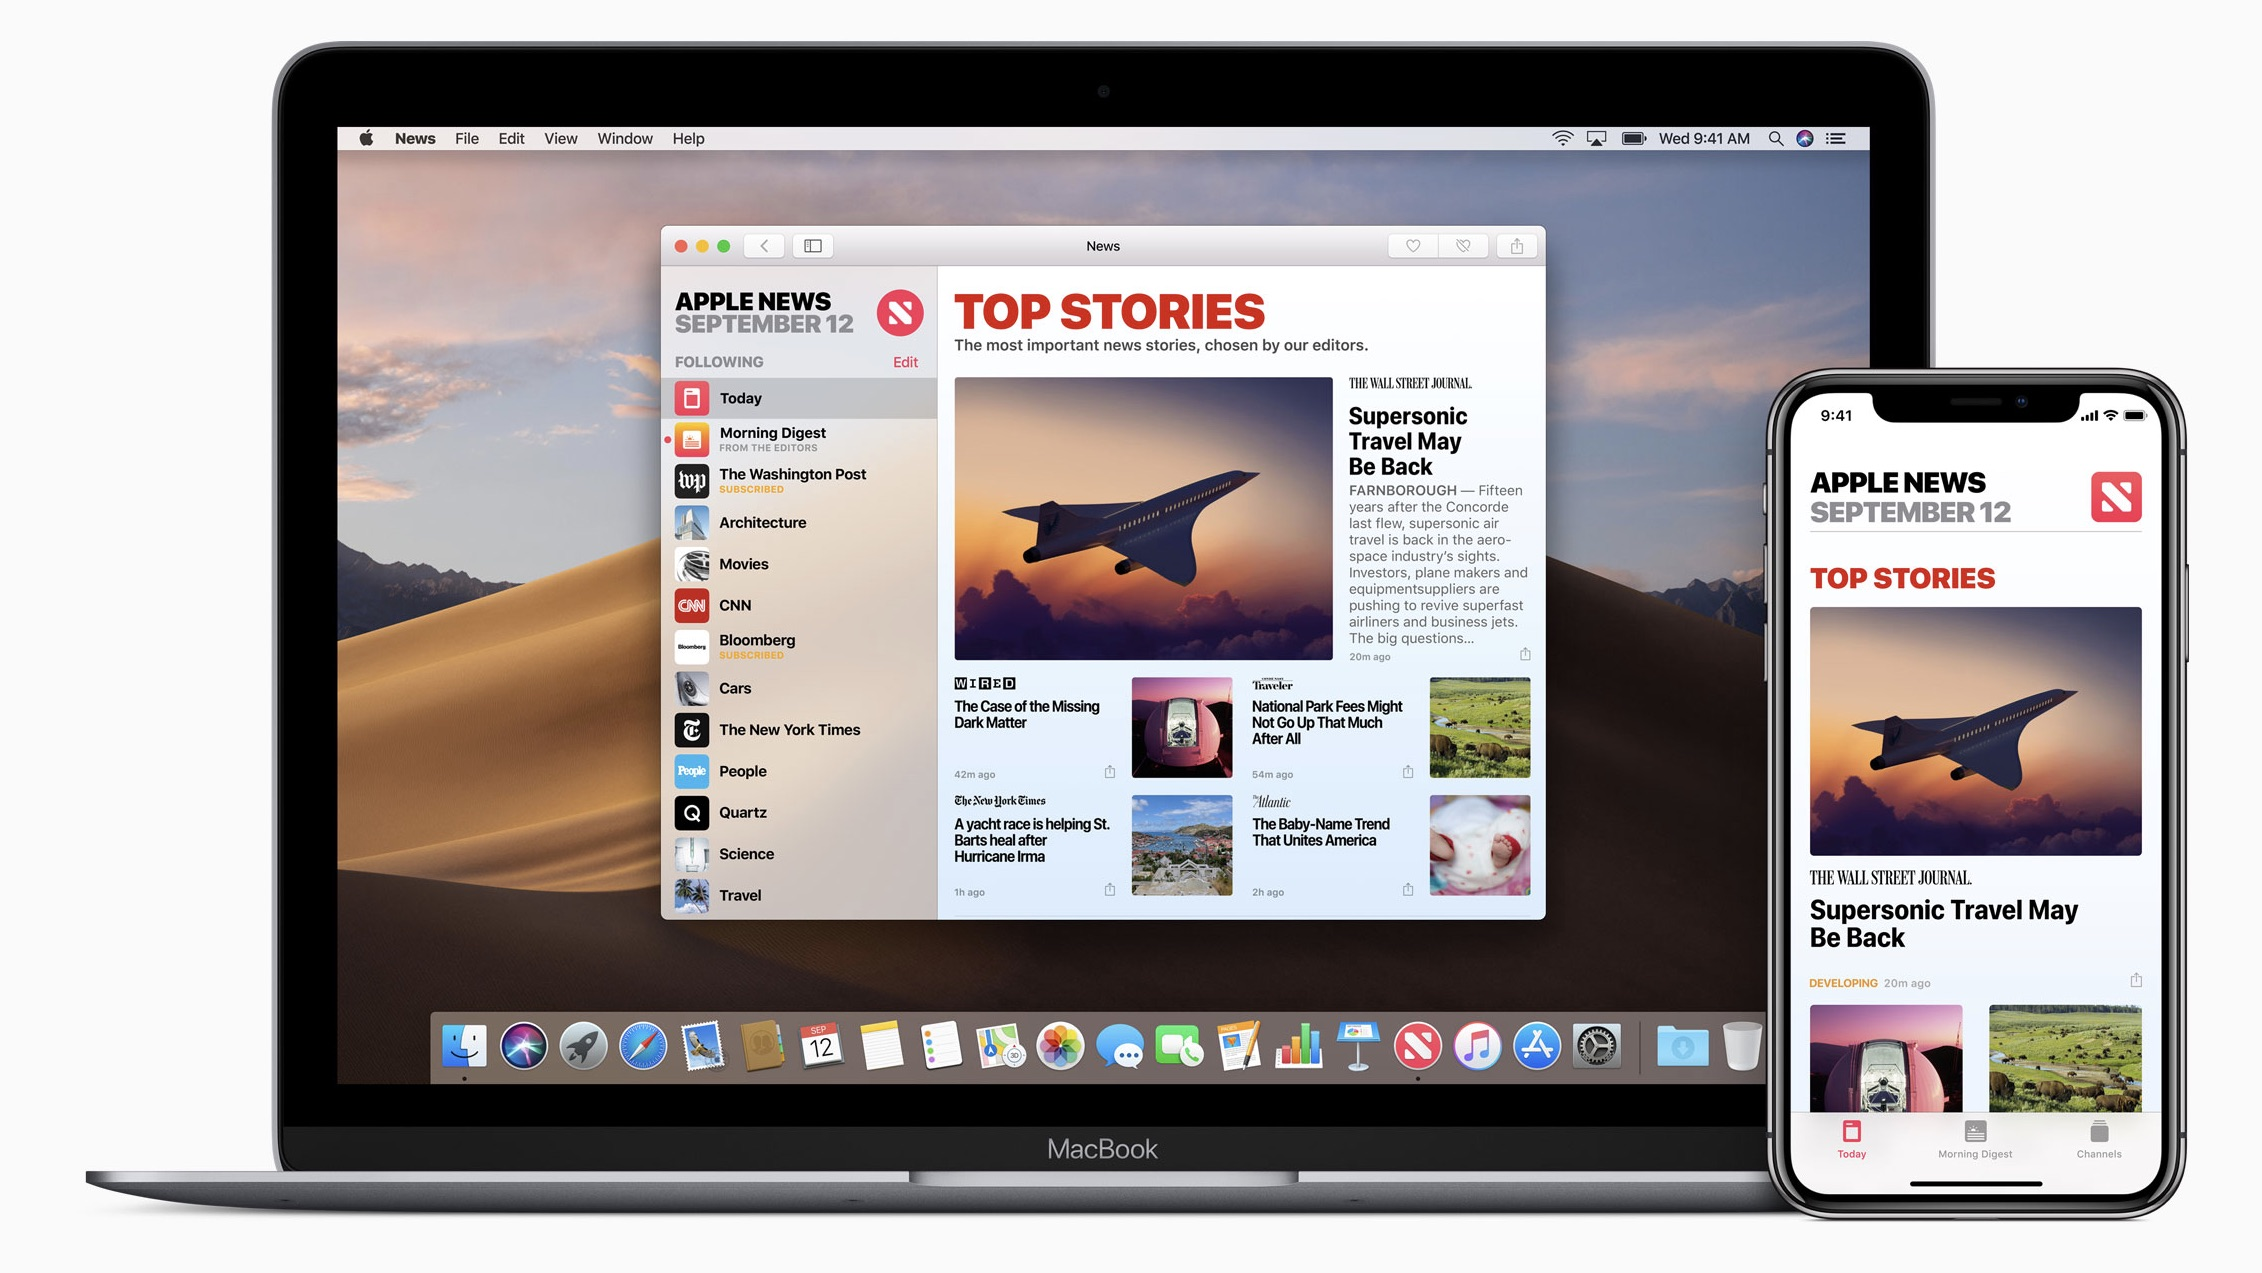 Apple secures deal with WSJ for paid Apple News service, NYT and Washington Post opt out